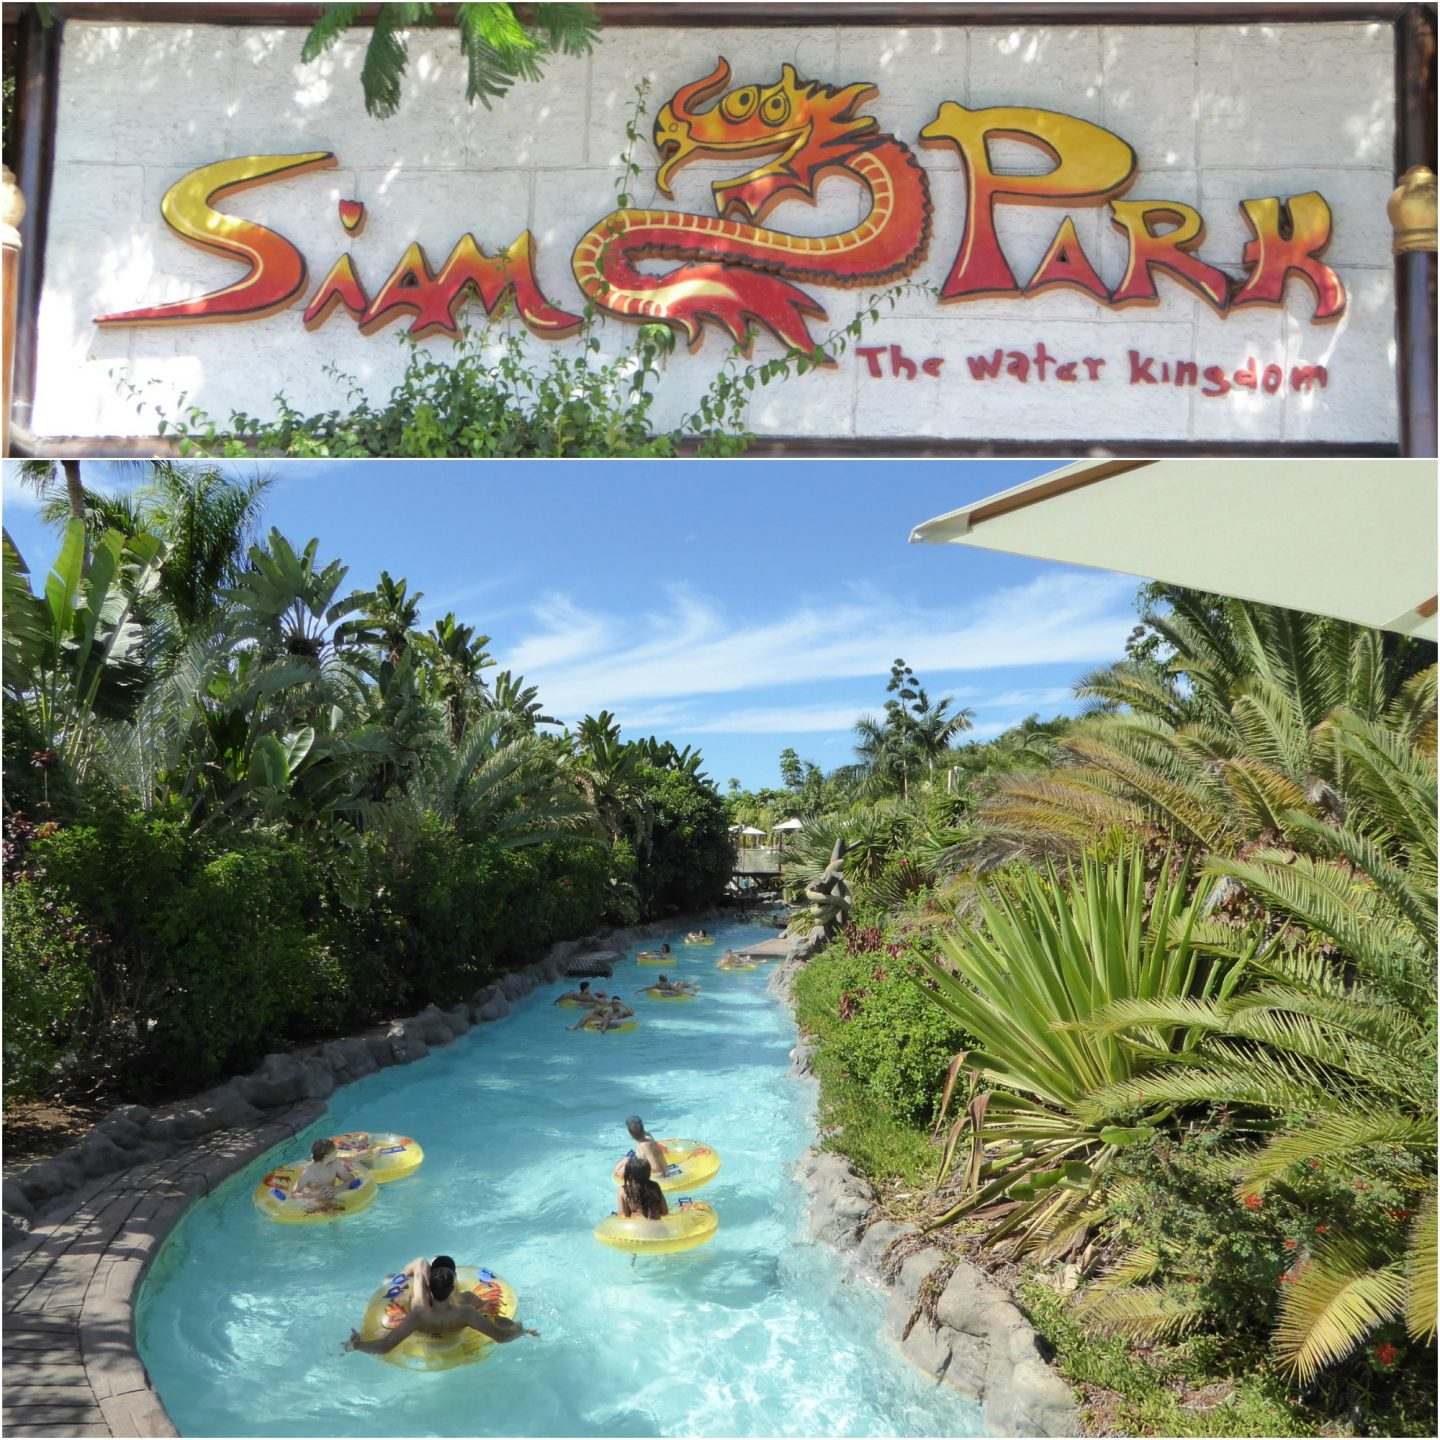 Water Kingdom Siam Park Tenerife review